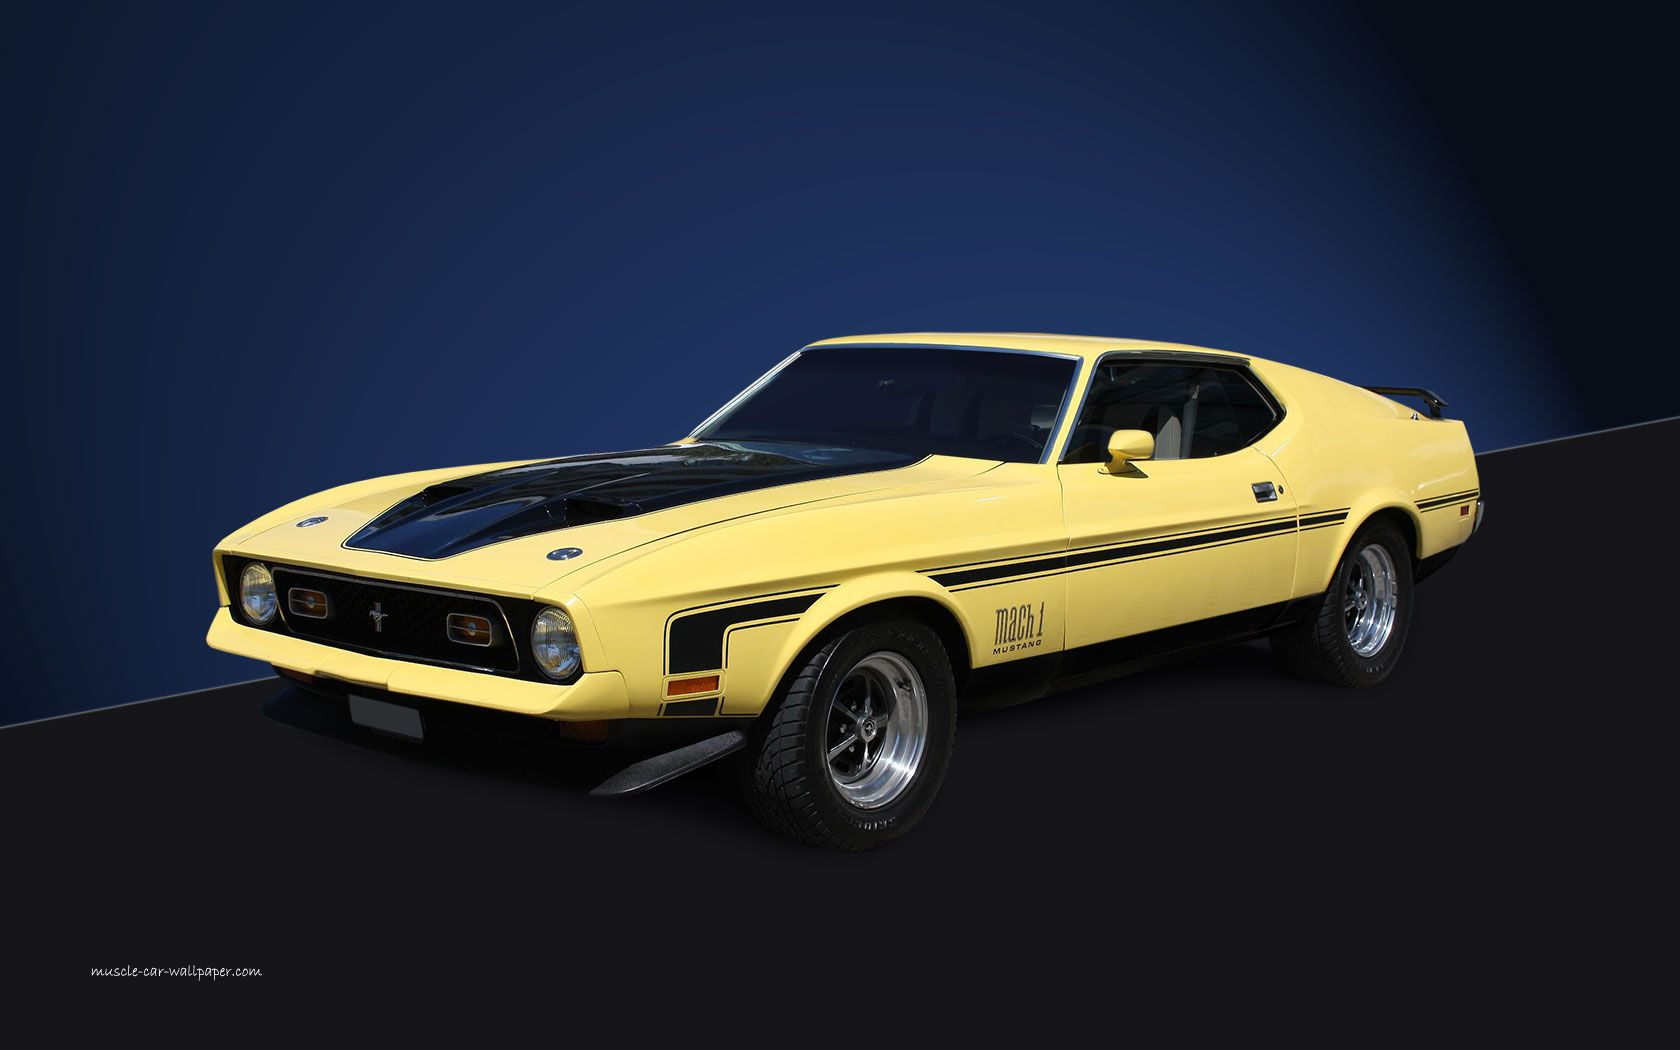 71 Mustang Mach One Yes 1971 Ford Mustang 71 Mustang 1971 Mustang